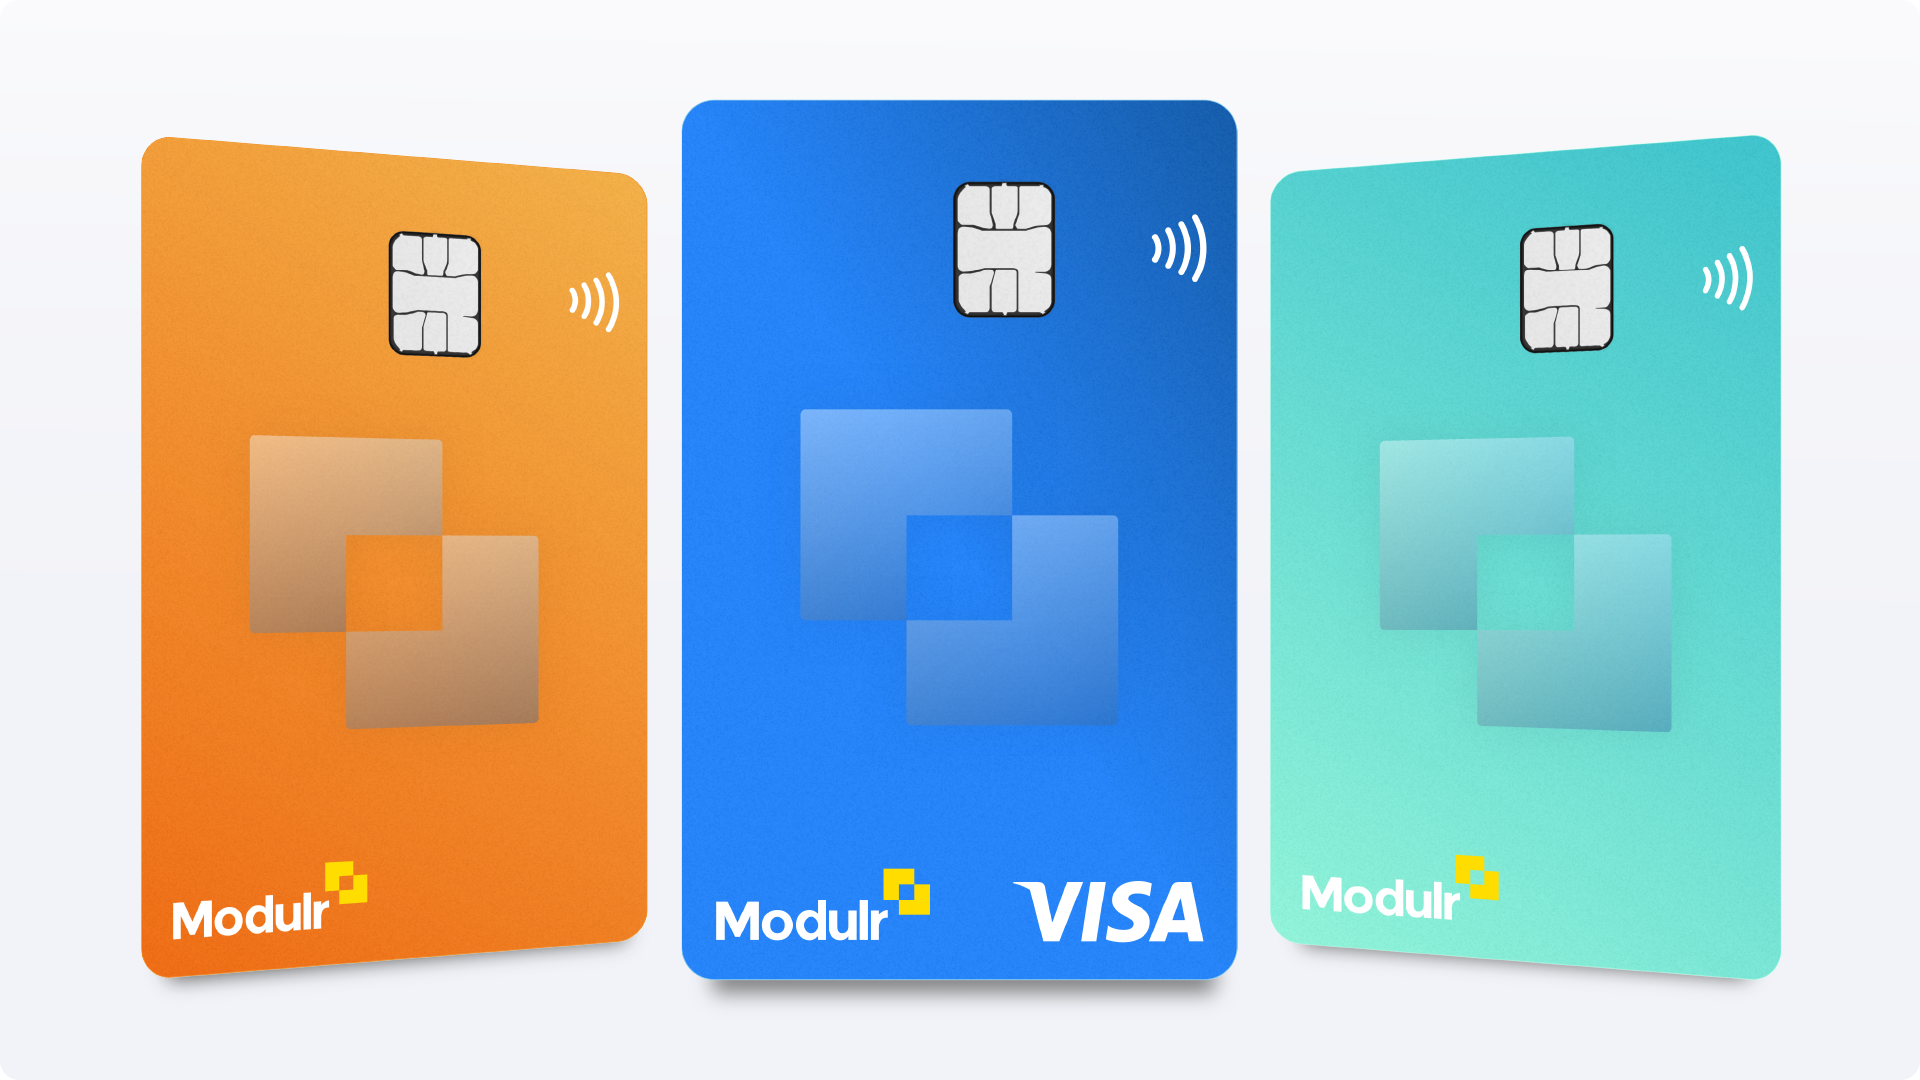 Modulr launches physical cards to complement its virtual card programme